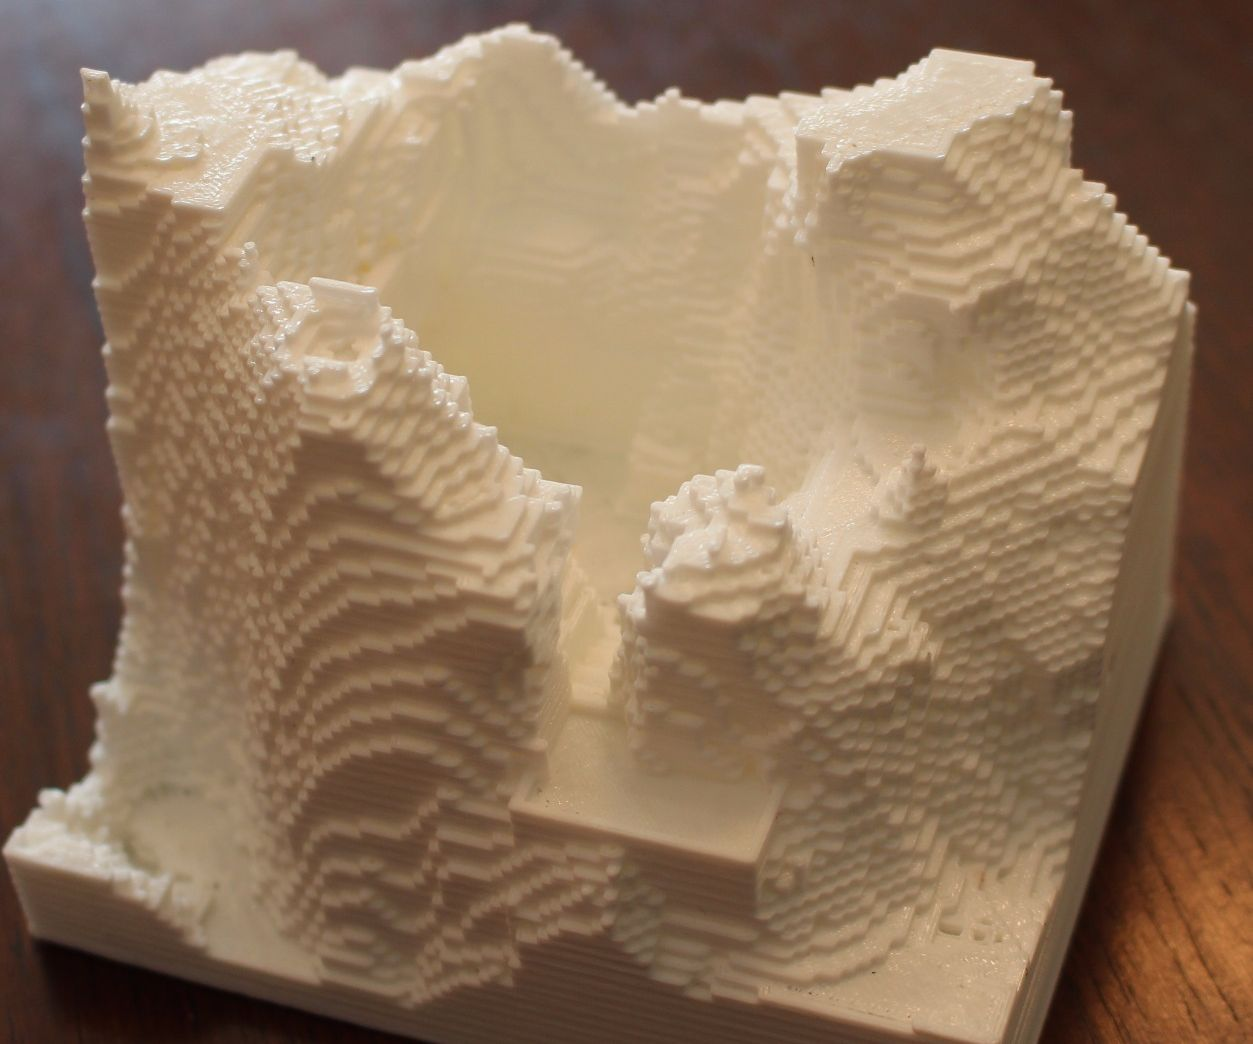 3d Print Your Minecraft World!